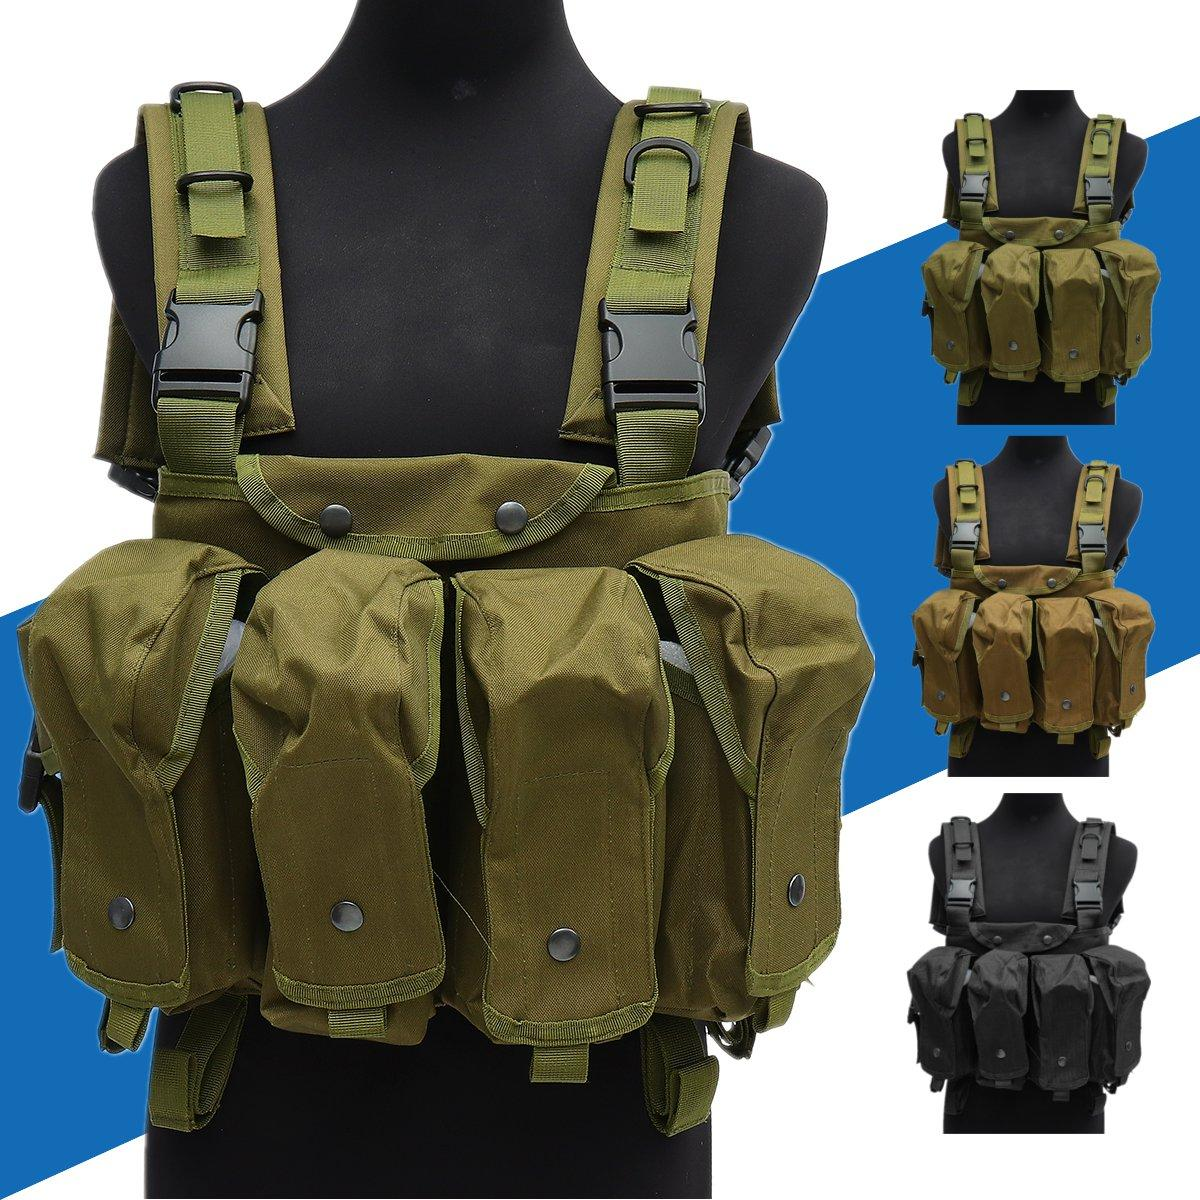 Chaleco táctico unisex al aire libre Combat Game Training Storage Carrier Belly Pocket Vest - 1